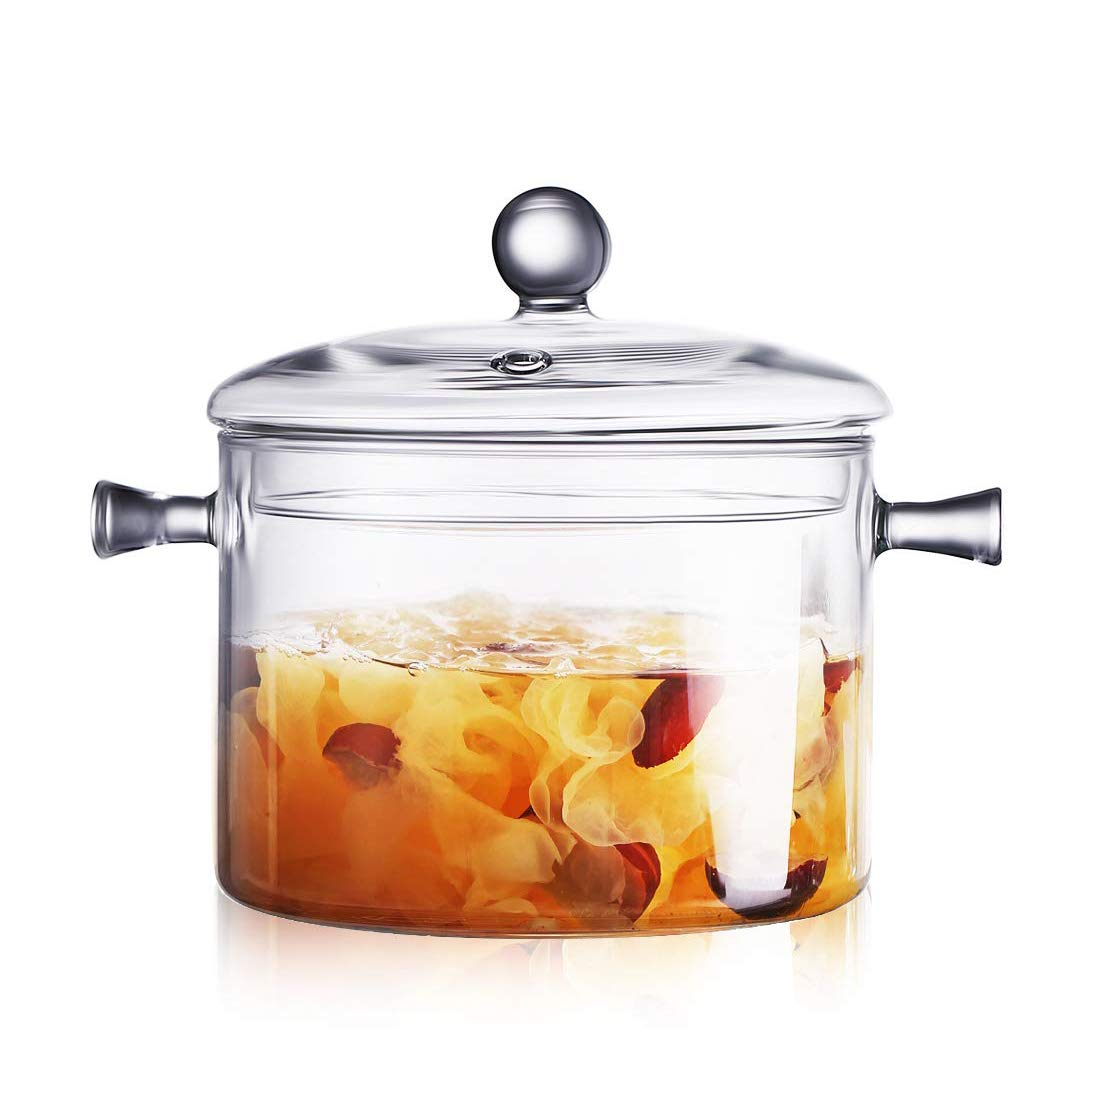 Glass Saucepan with Cover, 1.5L/50oz Heat-resistant Glass Stovetop Pot and Pan with Lid, The Best Handmade Glass Cookware Set Cooktop Safe for Pasta Noodle, Soup, Milk, Baby Food by LEAVES AND TREES Y